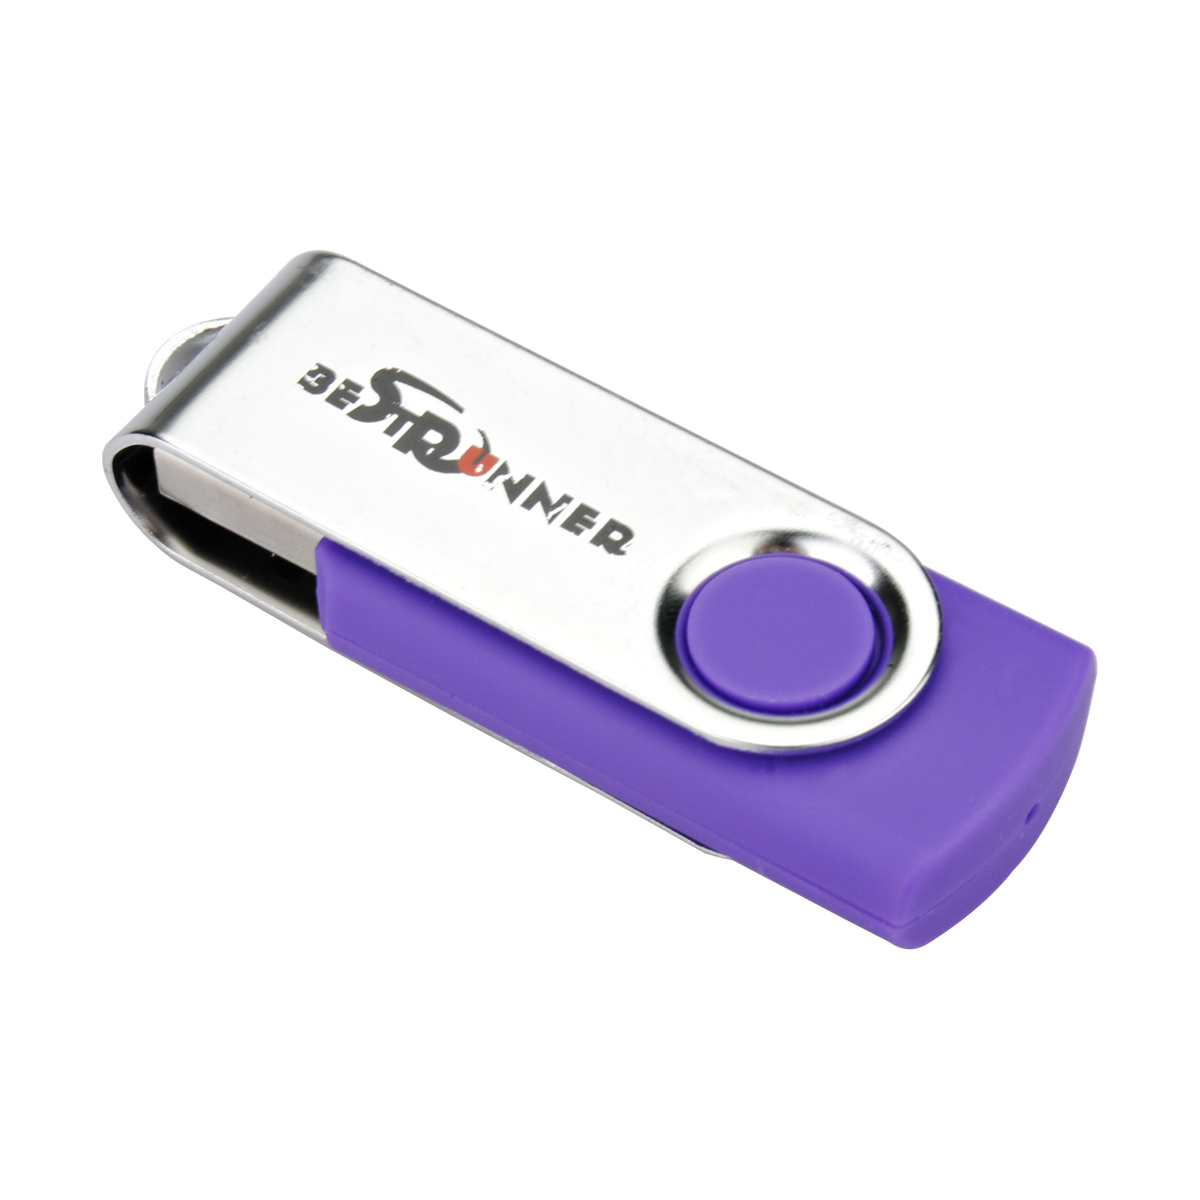 BESTRUNNER 1GB USB 2.0 thumbdrive Flash Drive Pen Bright Memory Stick Thumb U Disk